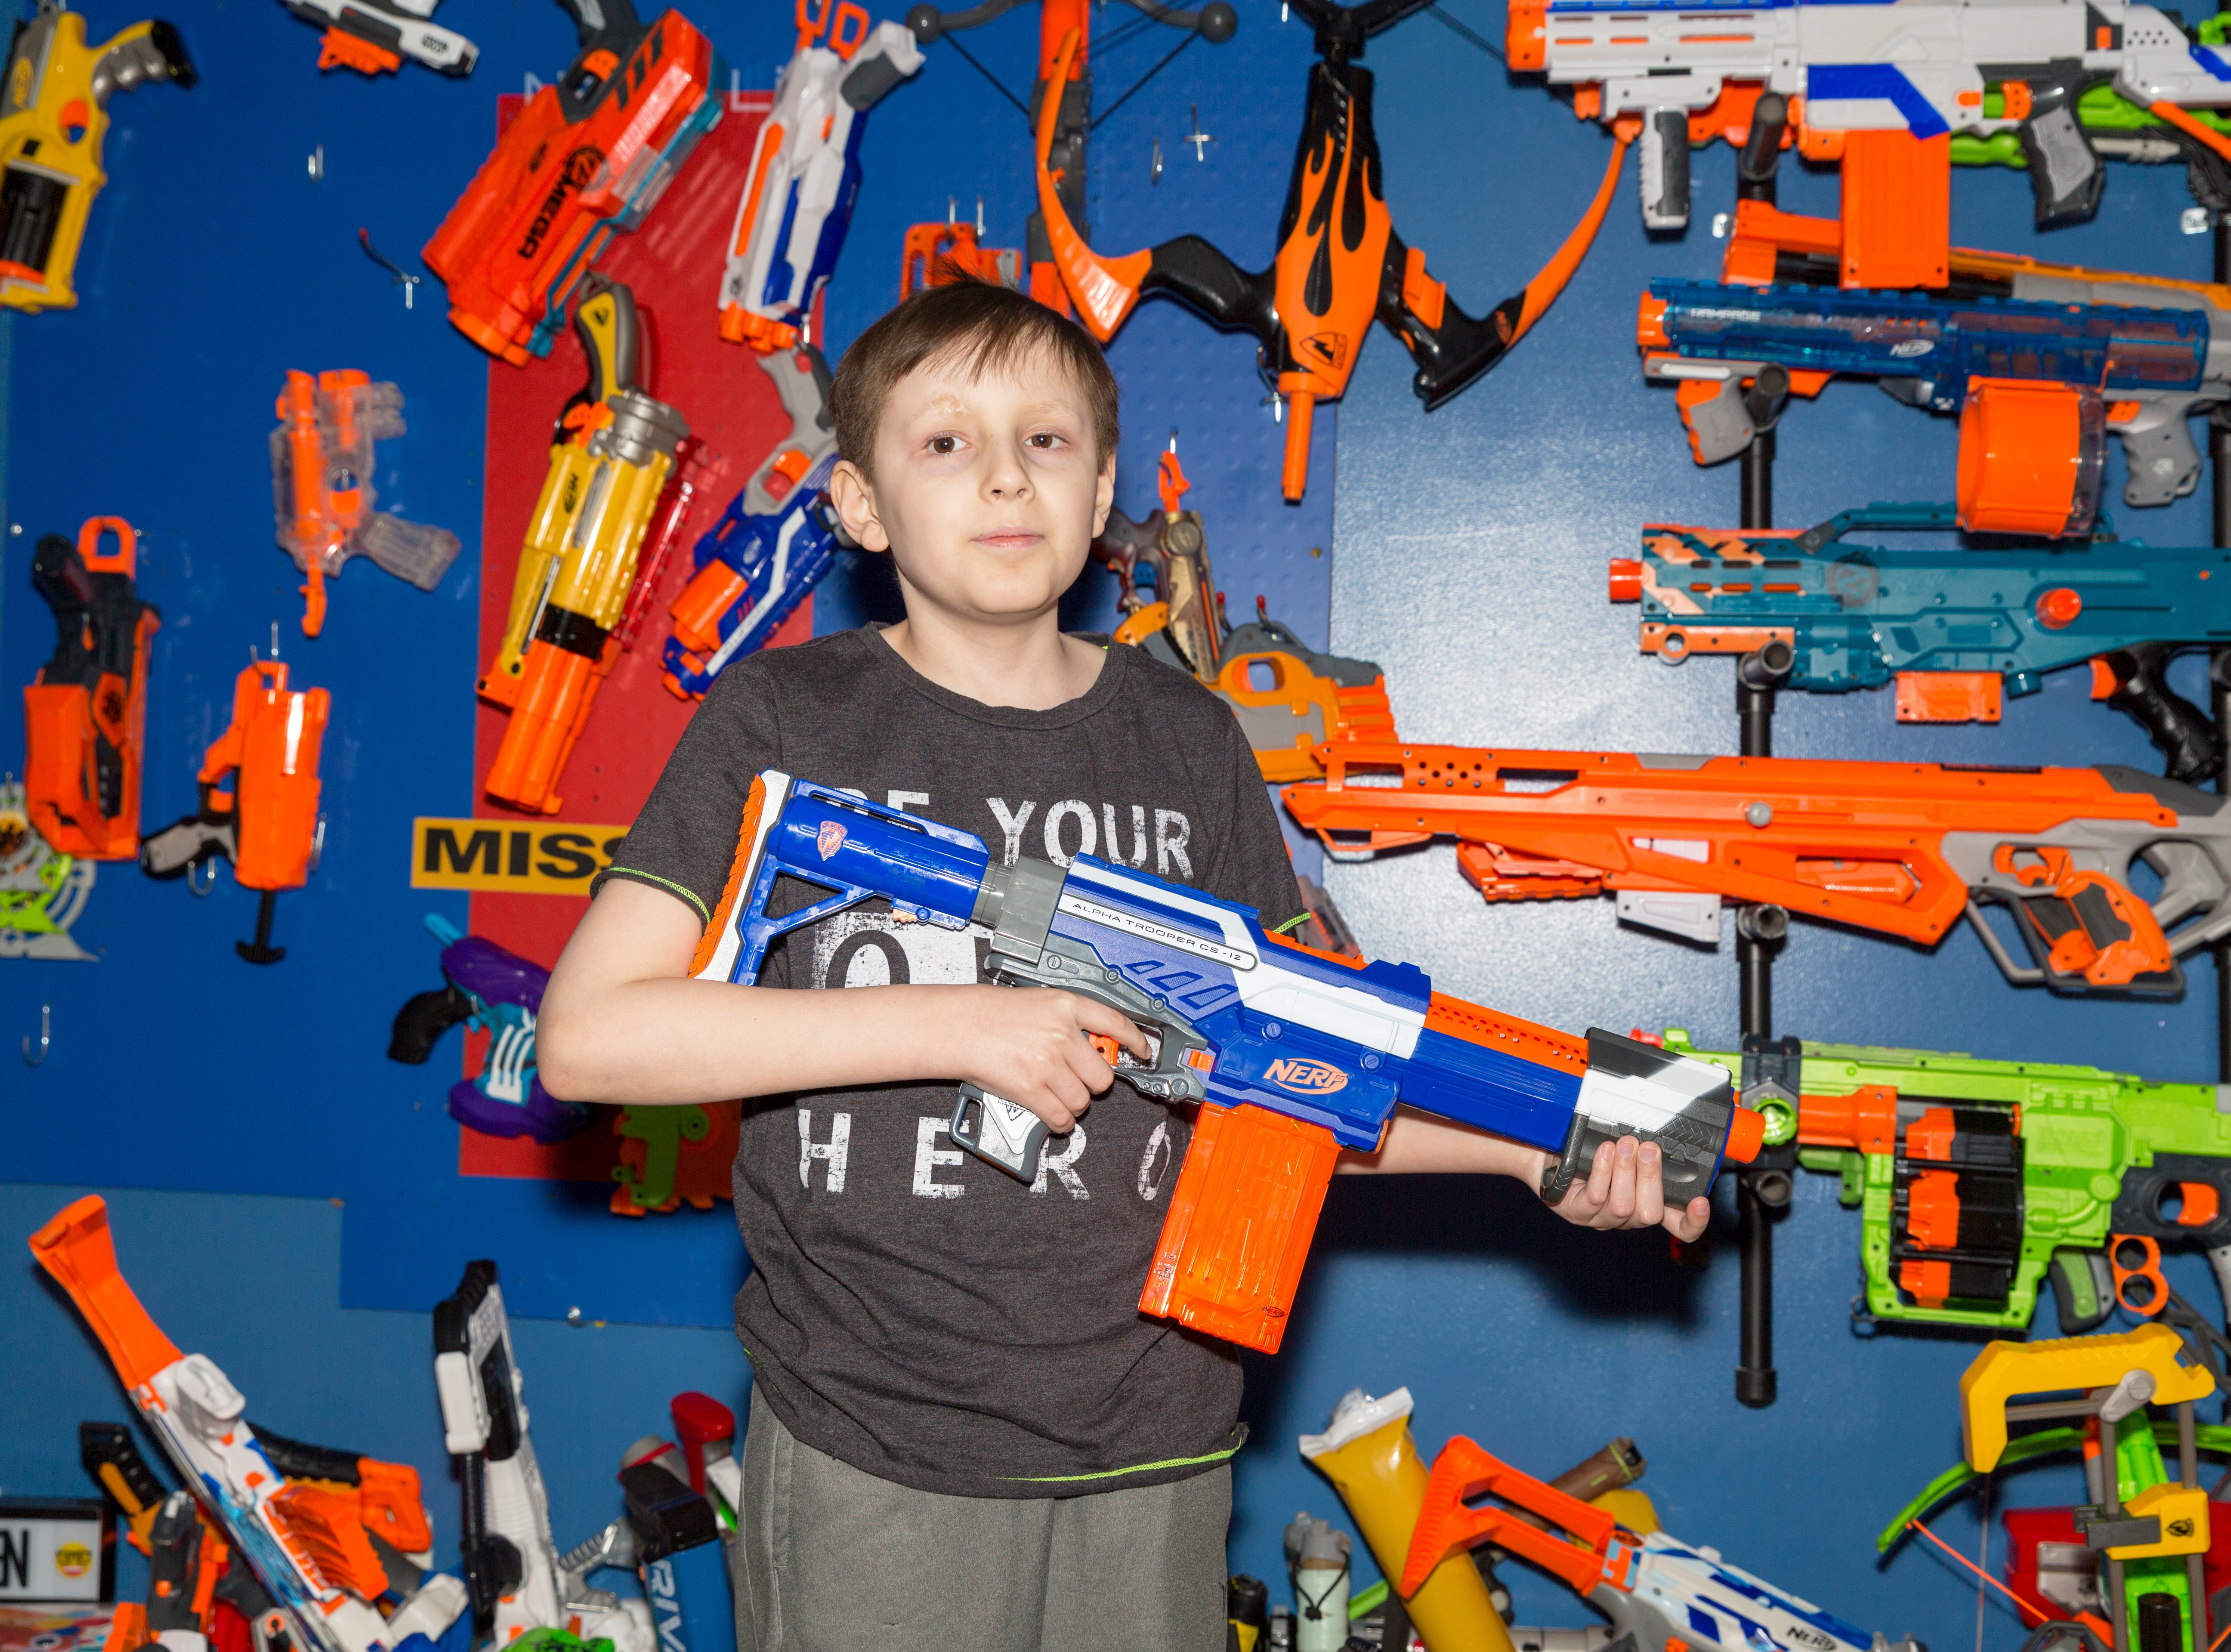 Aiden Turner, 13, poses with his favorite Nerf gun in his room in his family's home in Jackson, Tenn. Aiden has about 100 Nerf guns, his parents Lisa and Josh said, and he knows the names of all of them.